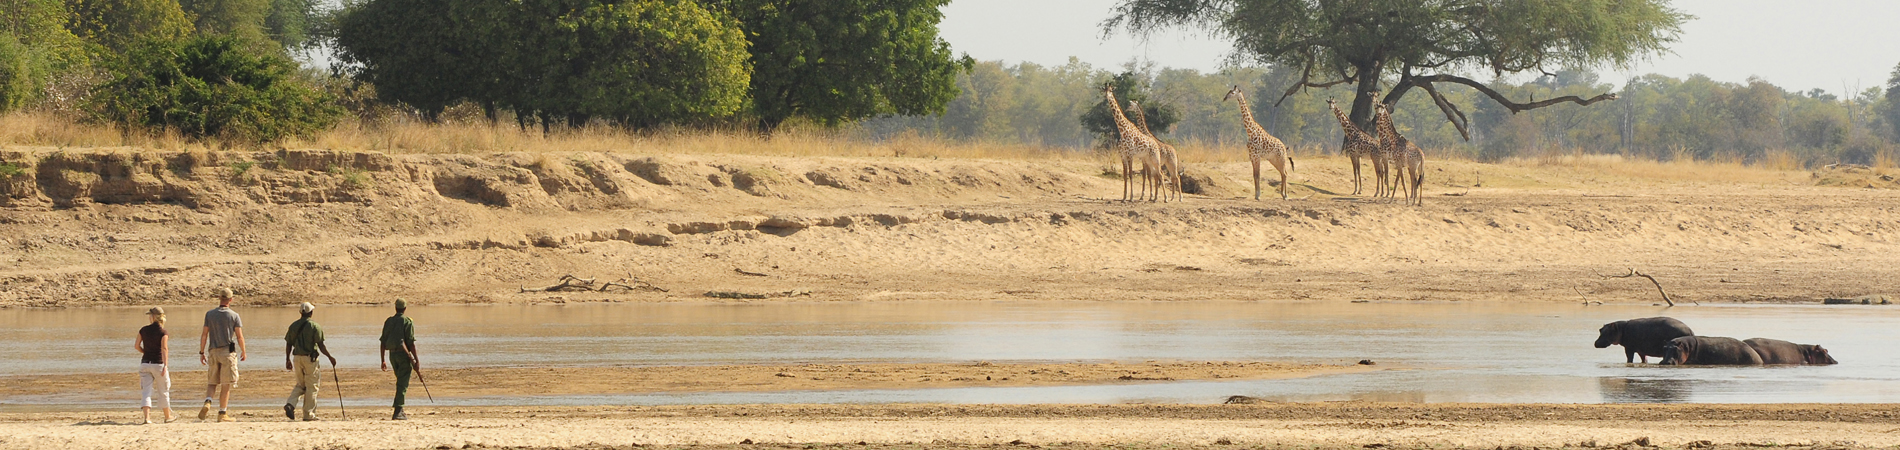 NCS – ZAM – Nsolo – walking safari giraffe header